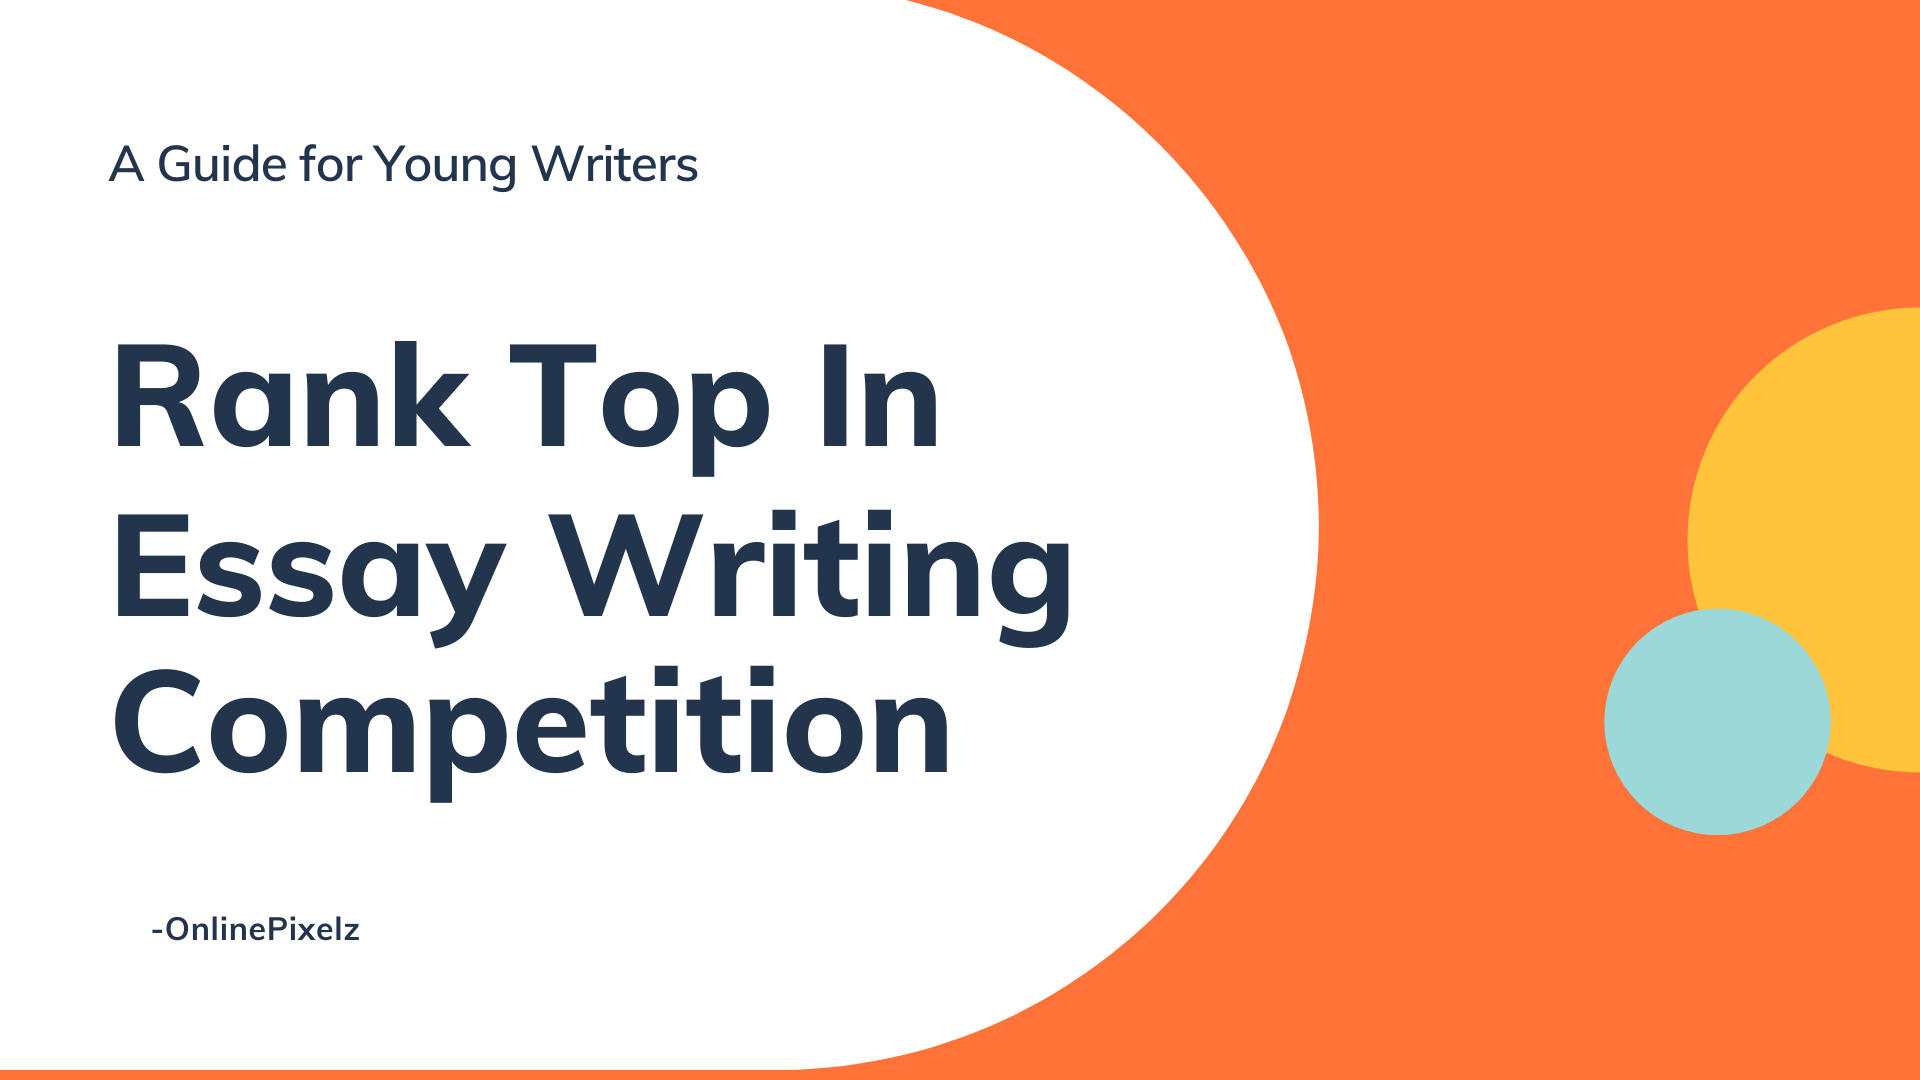 How To Rank Top In Essay Writing Competition